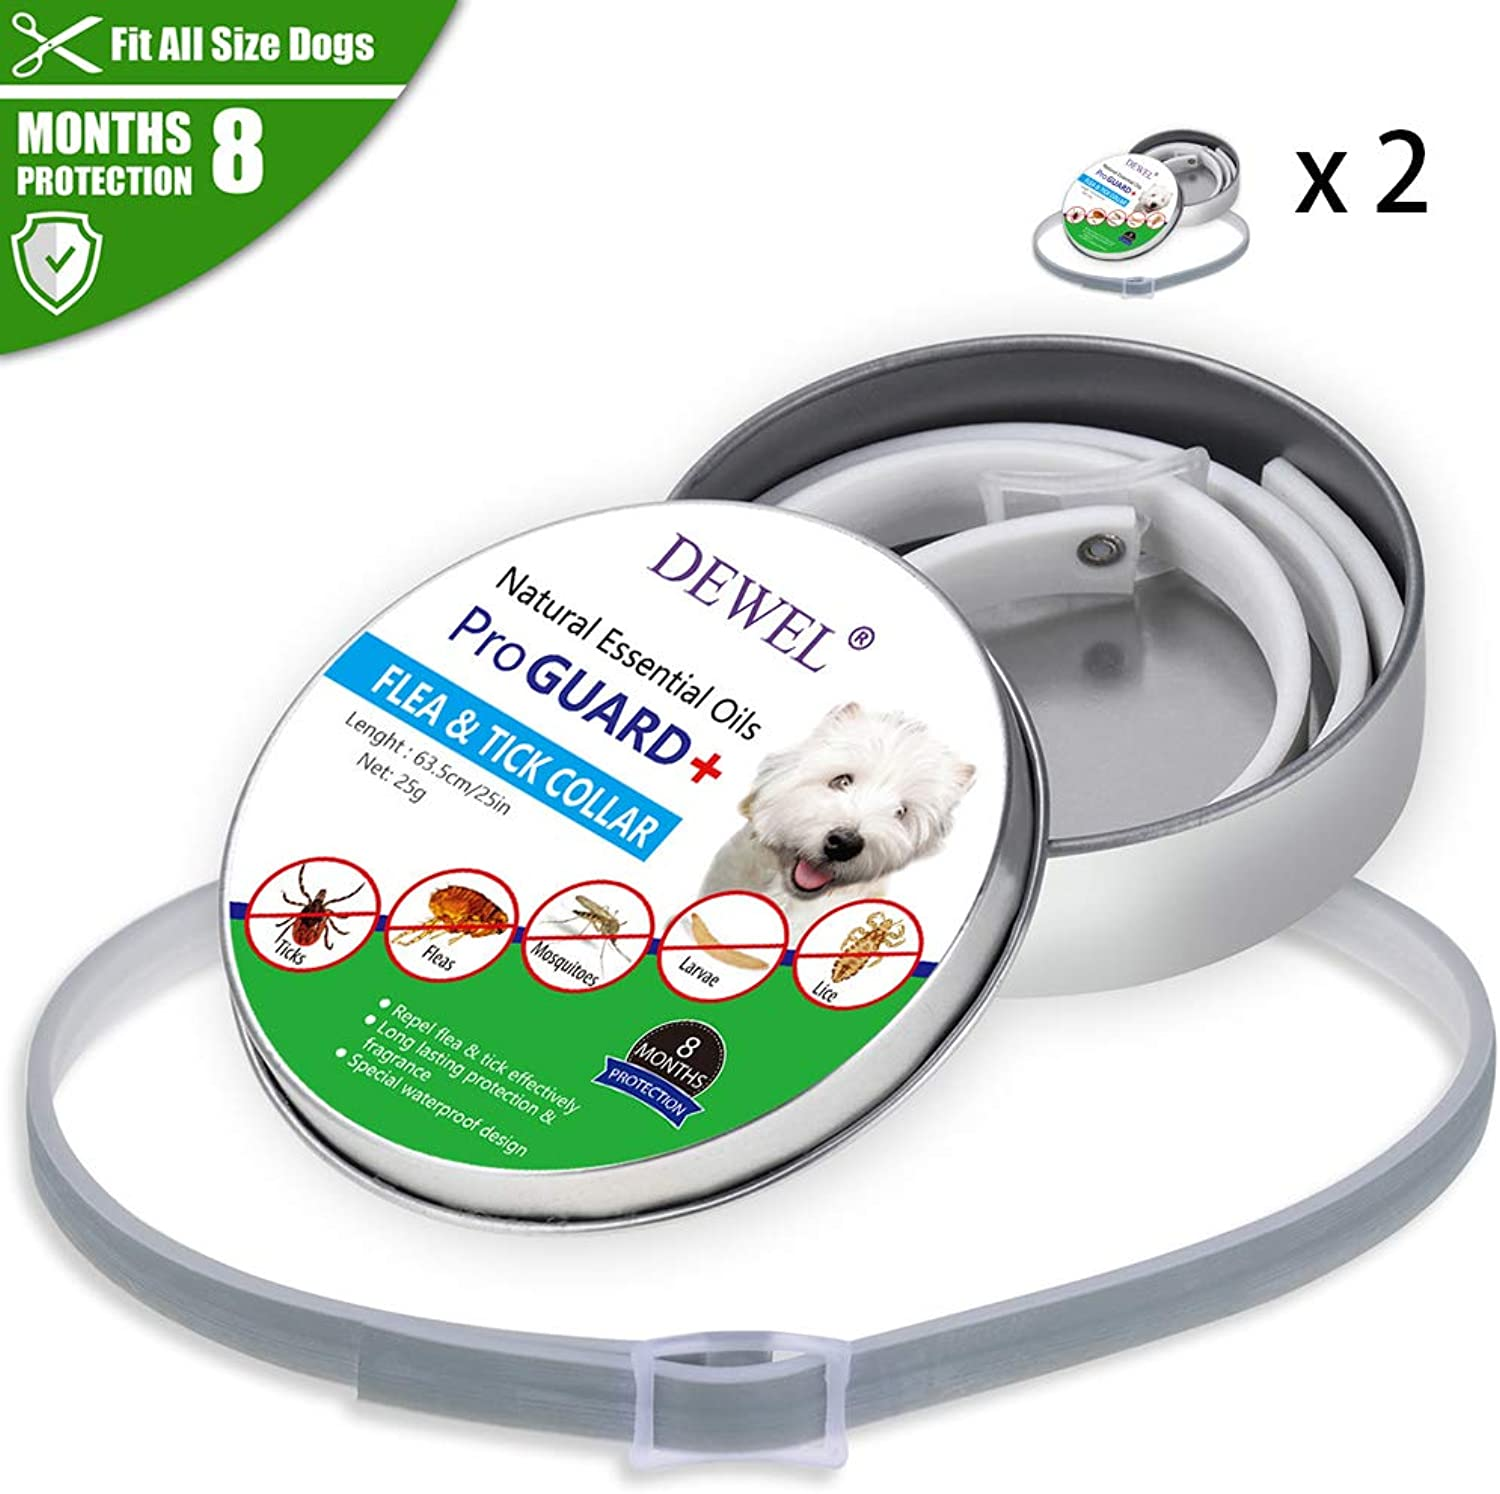 Anti Flea and Tick Collar for Dogs & Cats,Repellent Pest Control CollarsNatural Plant Essential Oil Formula 8 Months Predection,Adjustable 25  Length for Small Medium Large Pets